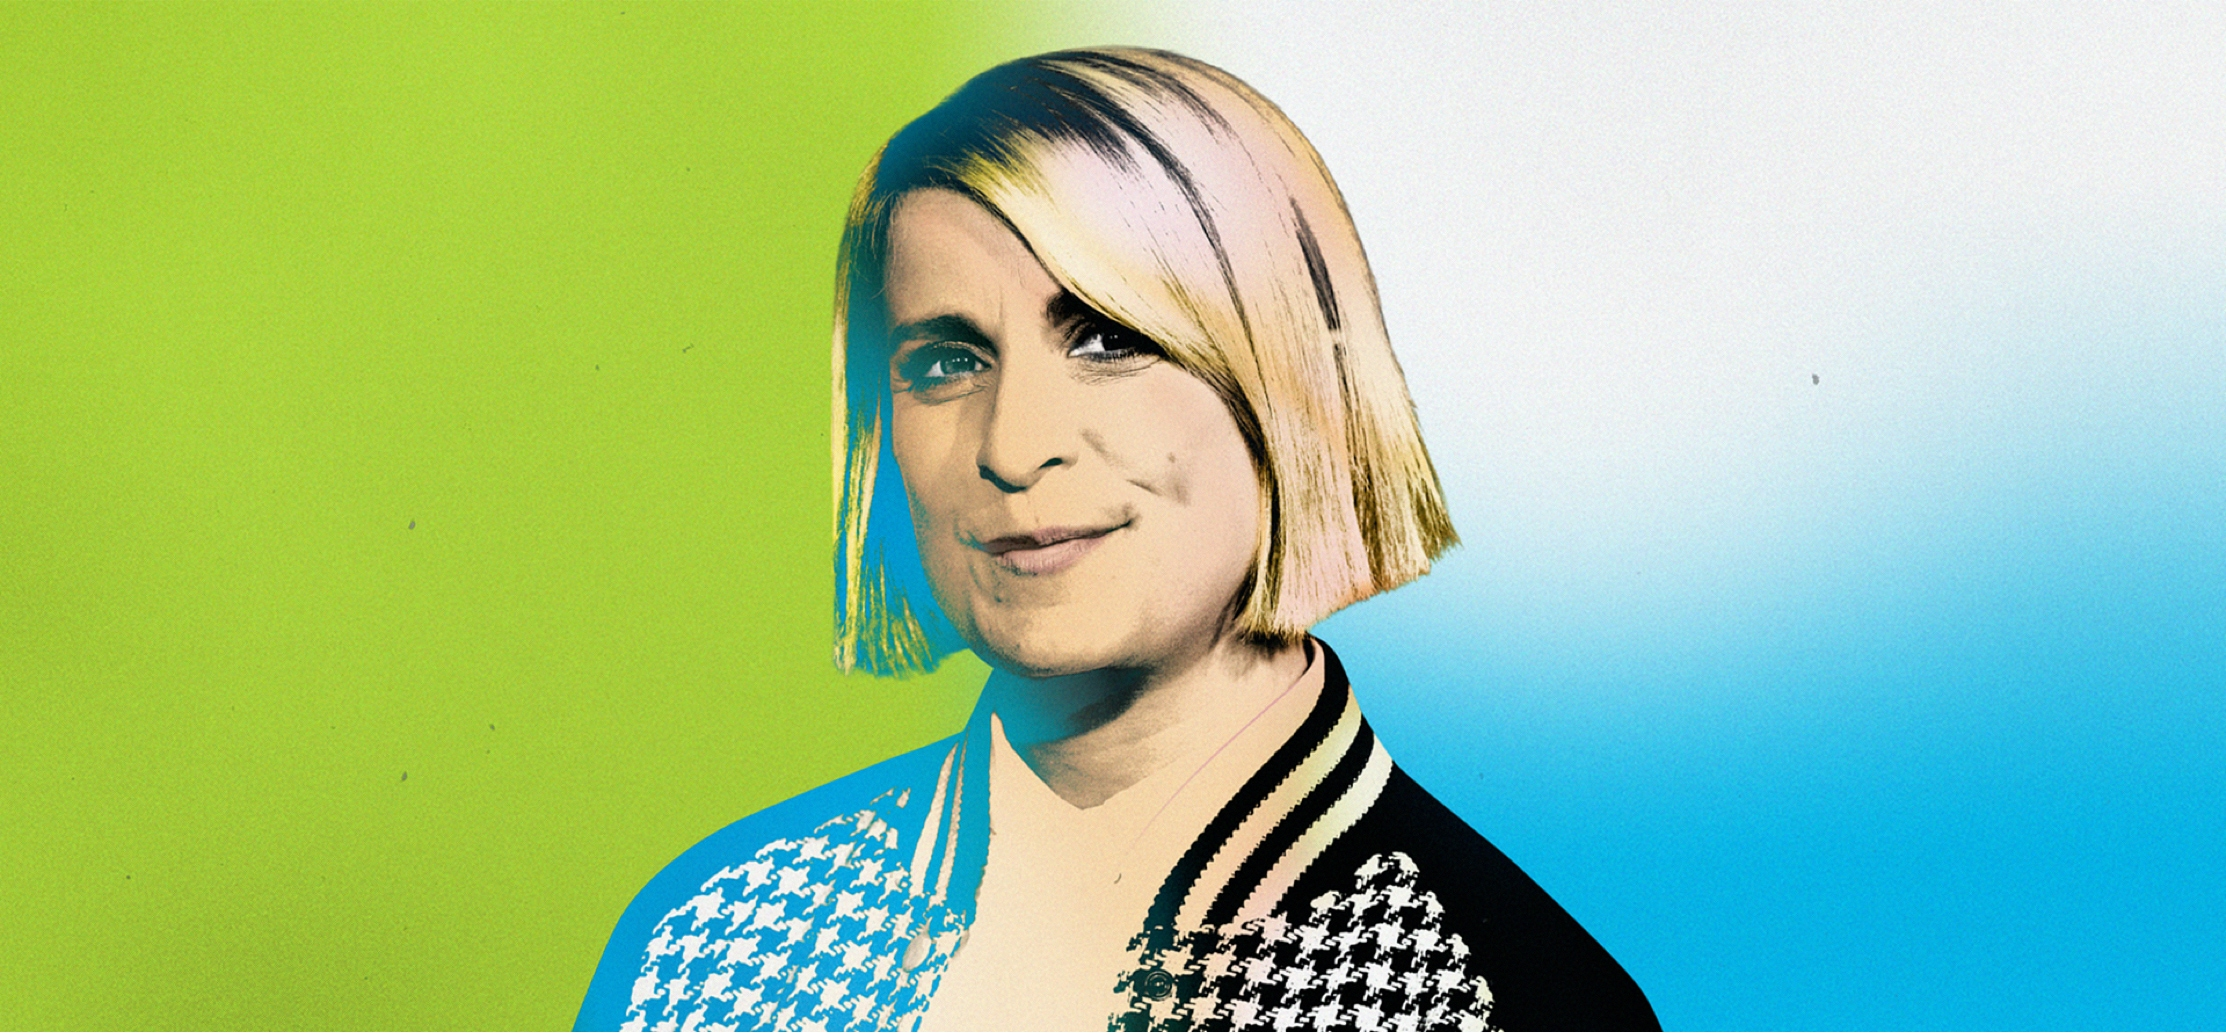 Art of Liz Feldman by Bráulio Amado